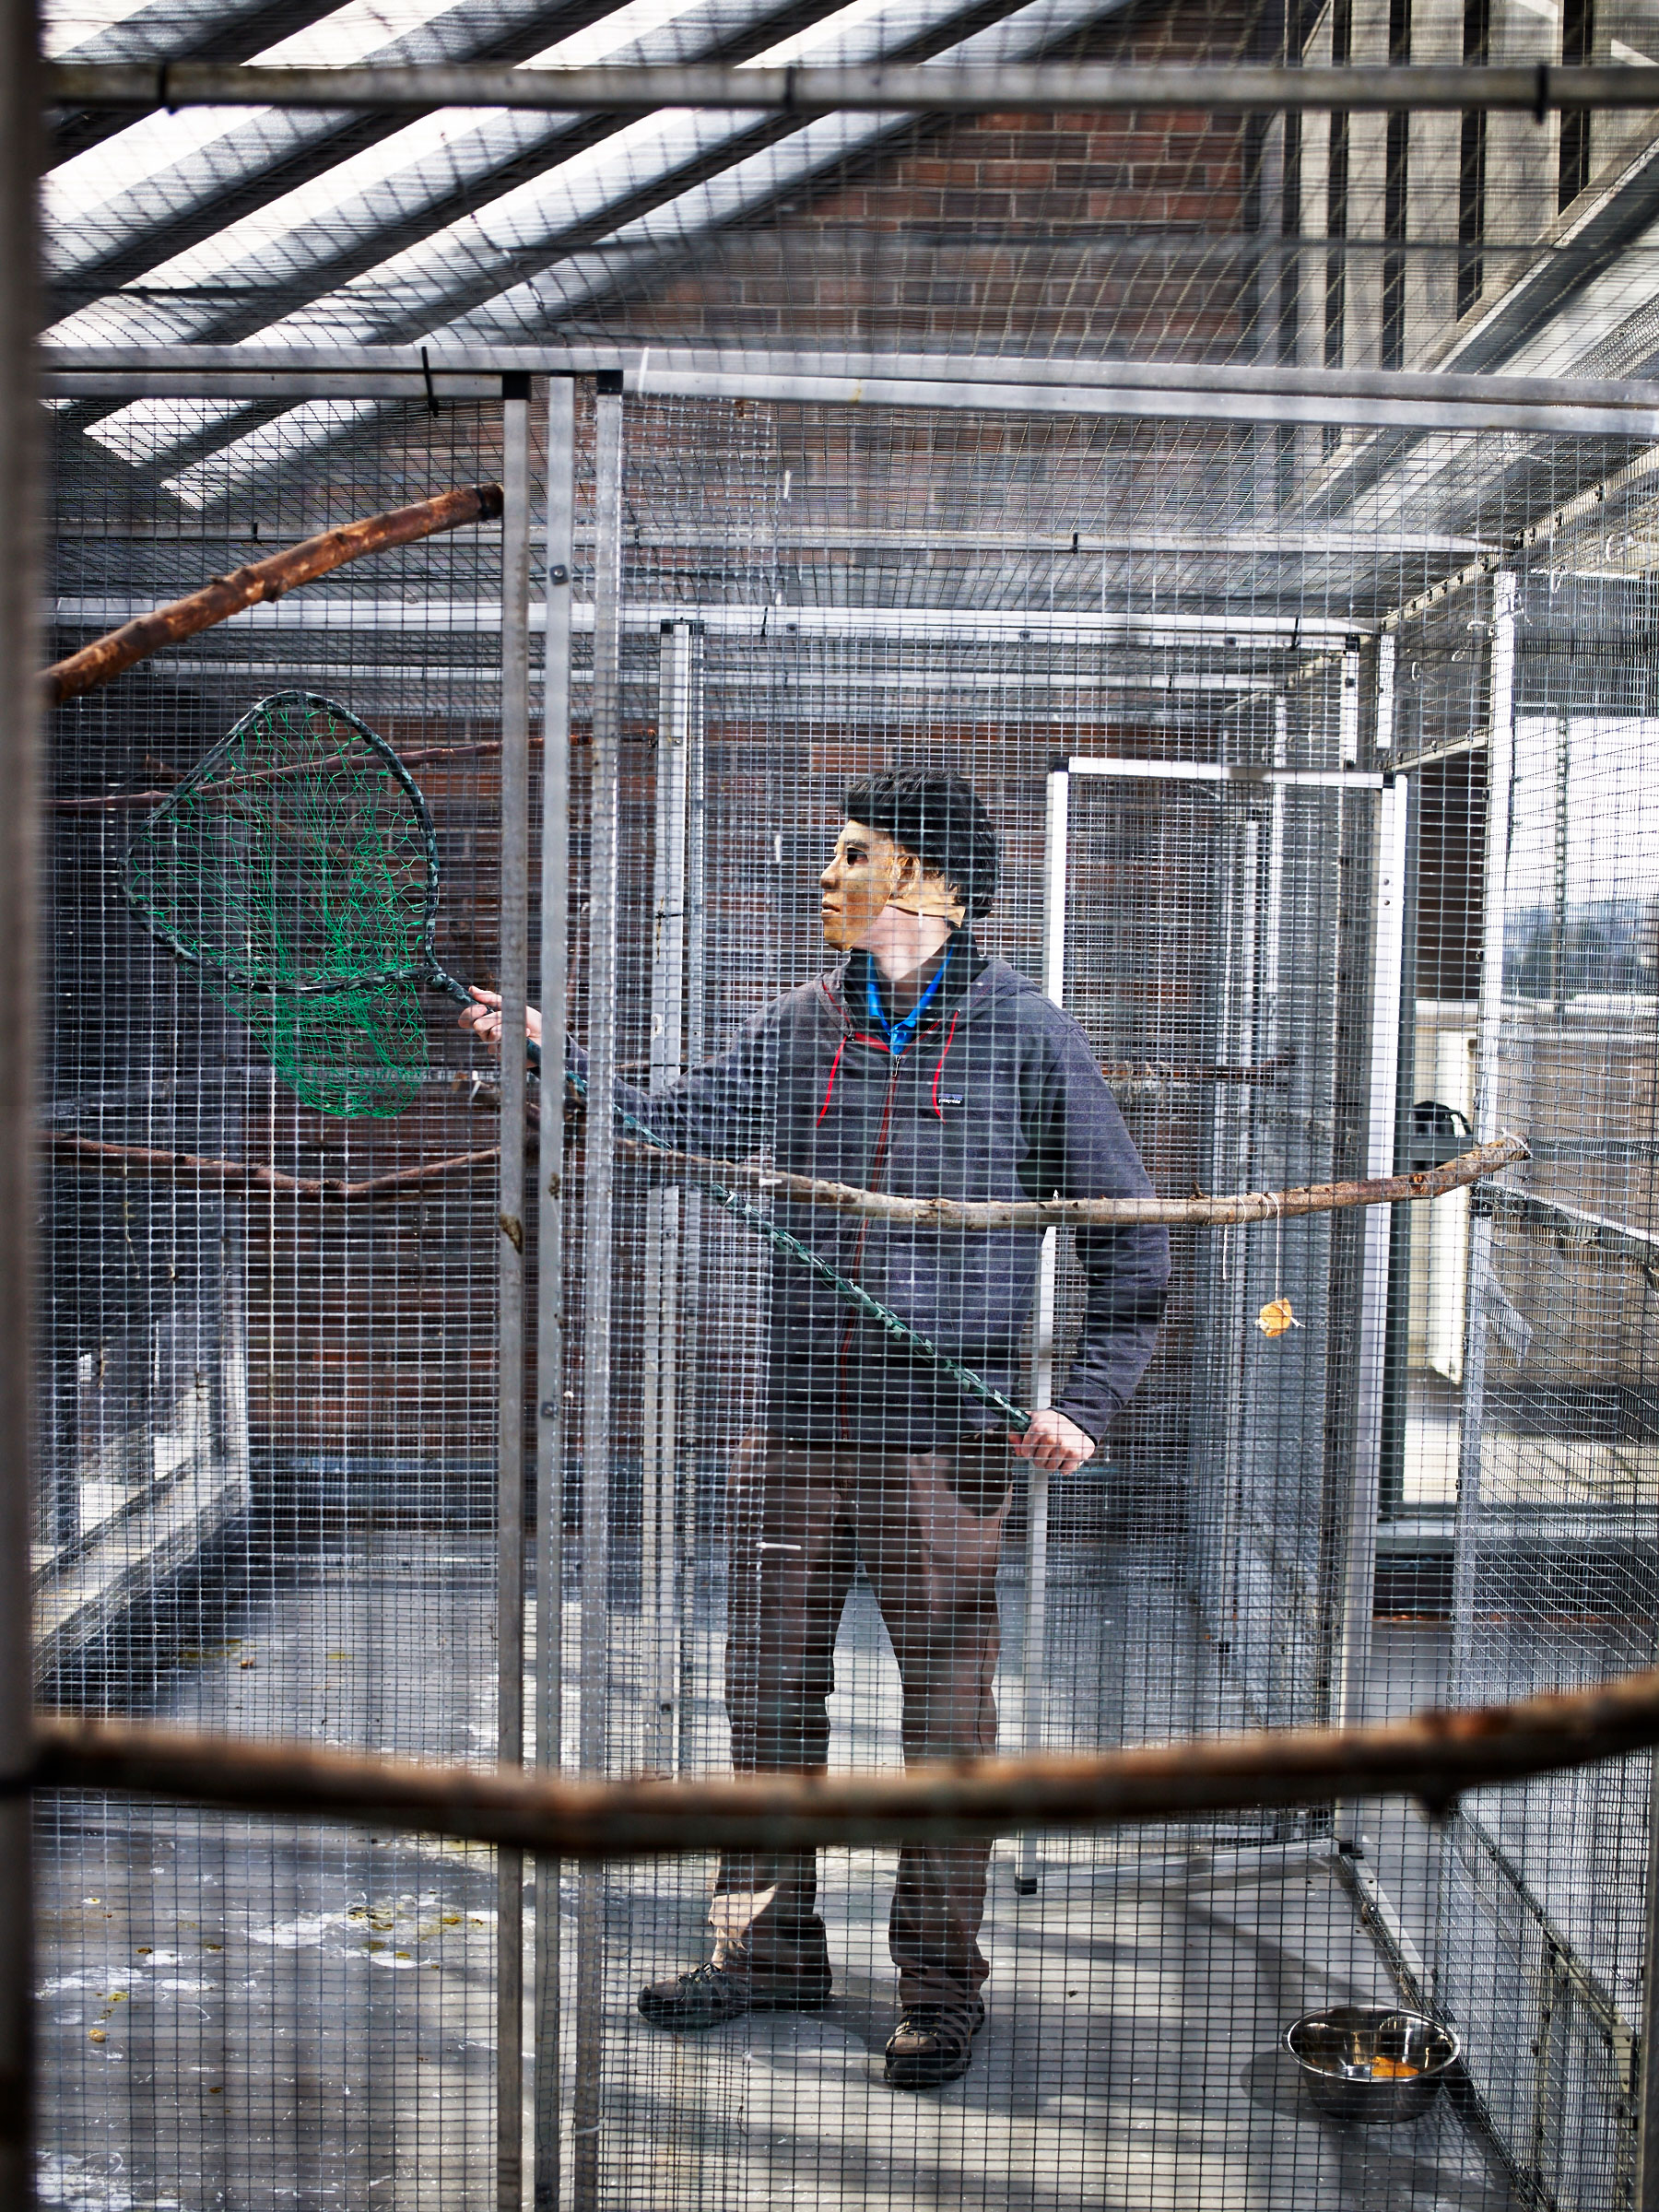 Grad student Loma Pendergraft wears a mask while catching a crow at an aviary at the University of Washington before preparing it for release. The bird and its mates have been at the facility for about two months. Andy Reynolds